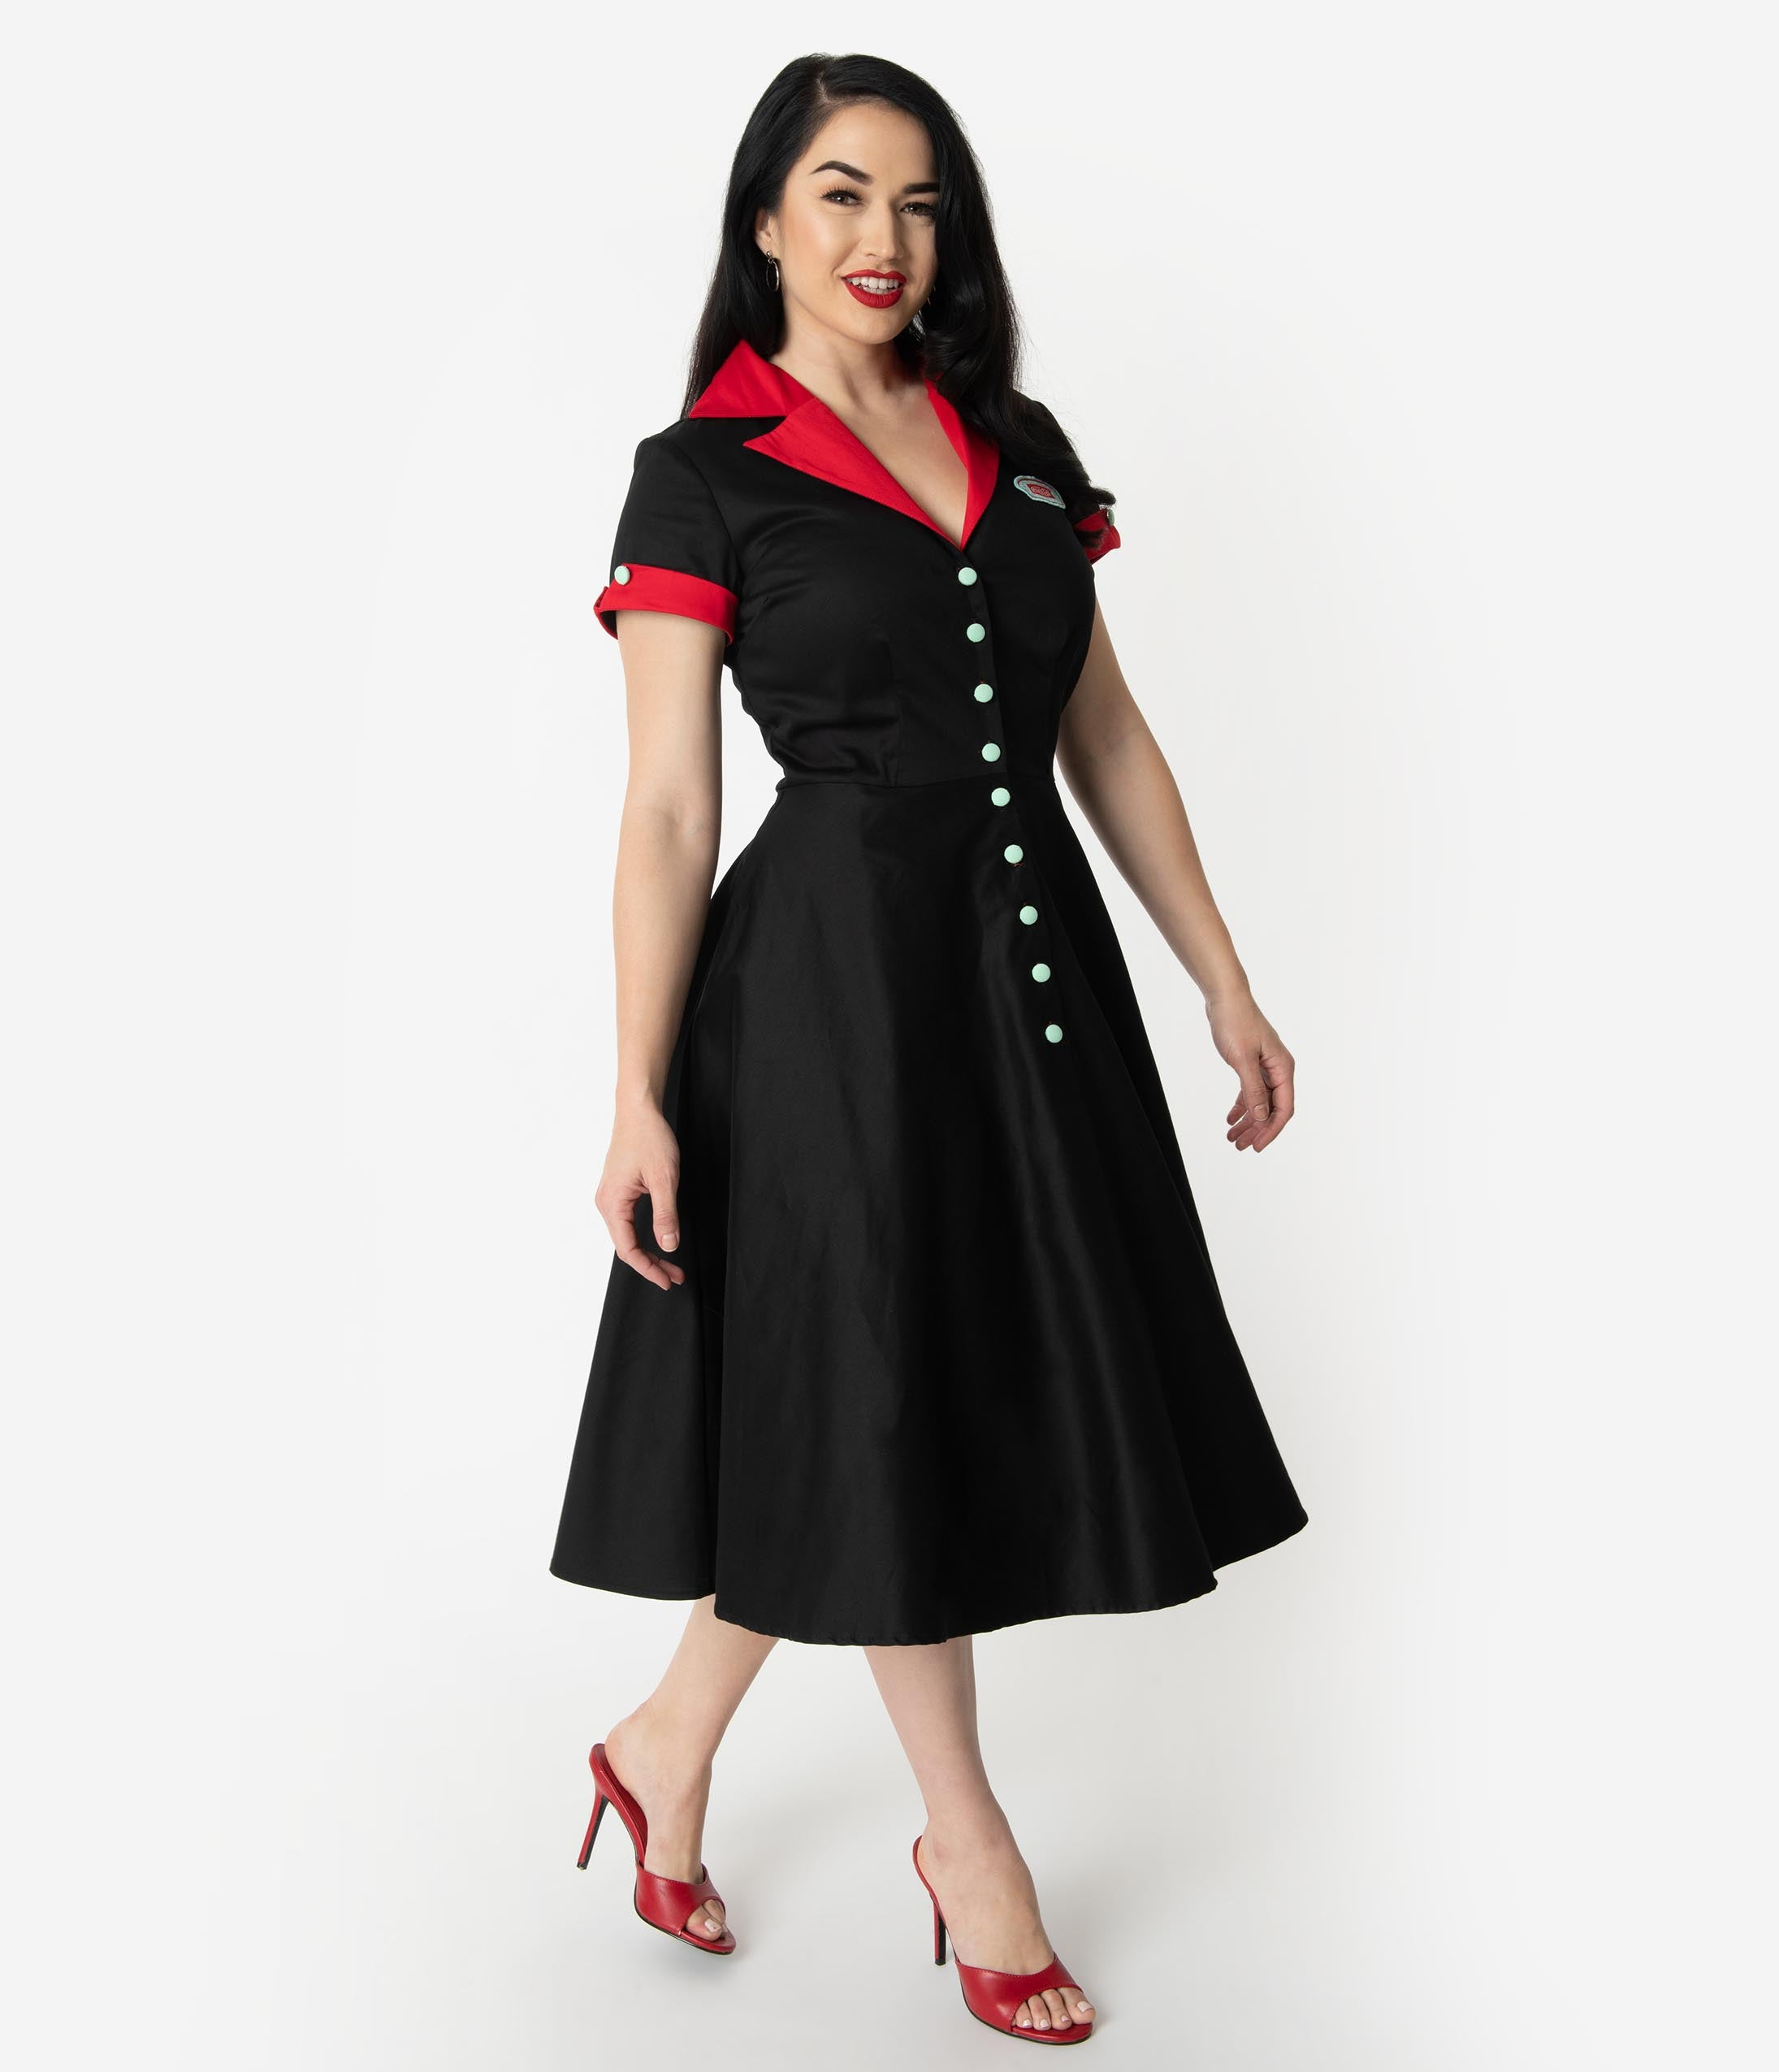 1950s Dresses, 50s Dresses | 1950s Style Dresses Coca-Cola Collection By Unique Vintage 1950S Black  Red Fizzy Swing Diner Dress $118.00 AT vintagedancer.com